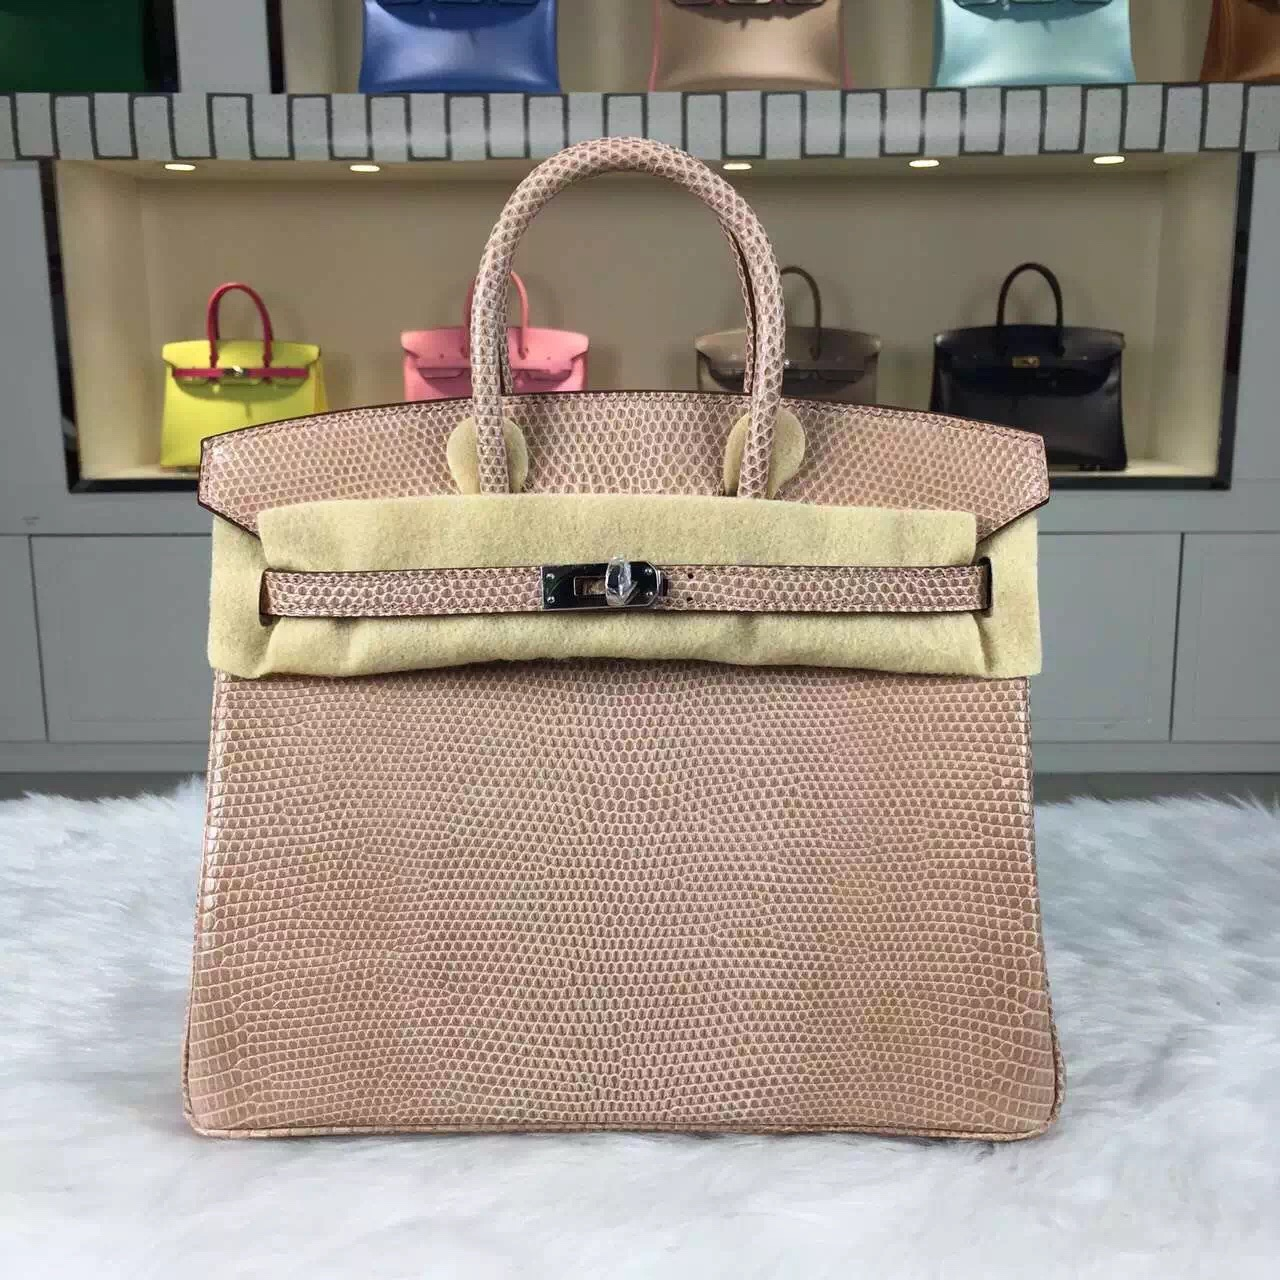 Hermes Customised France Imported Lizard Leather Birkin Bag30cm in Apricot